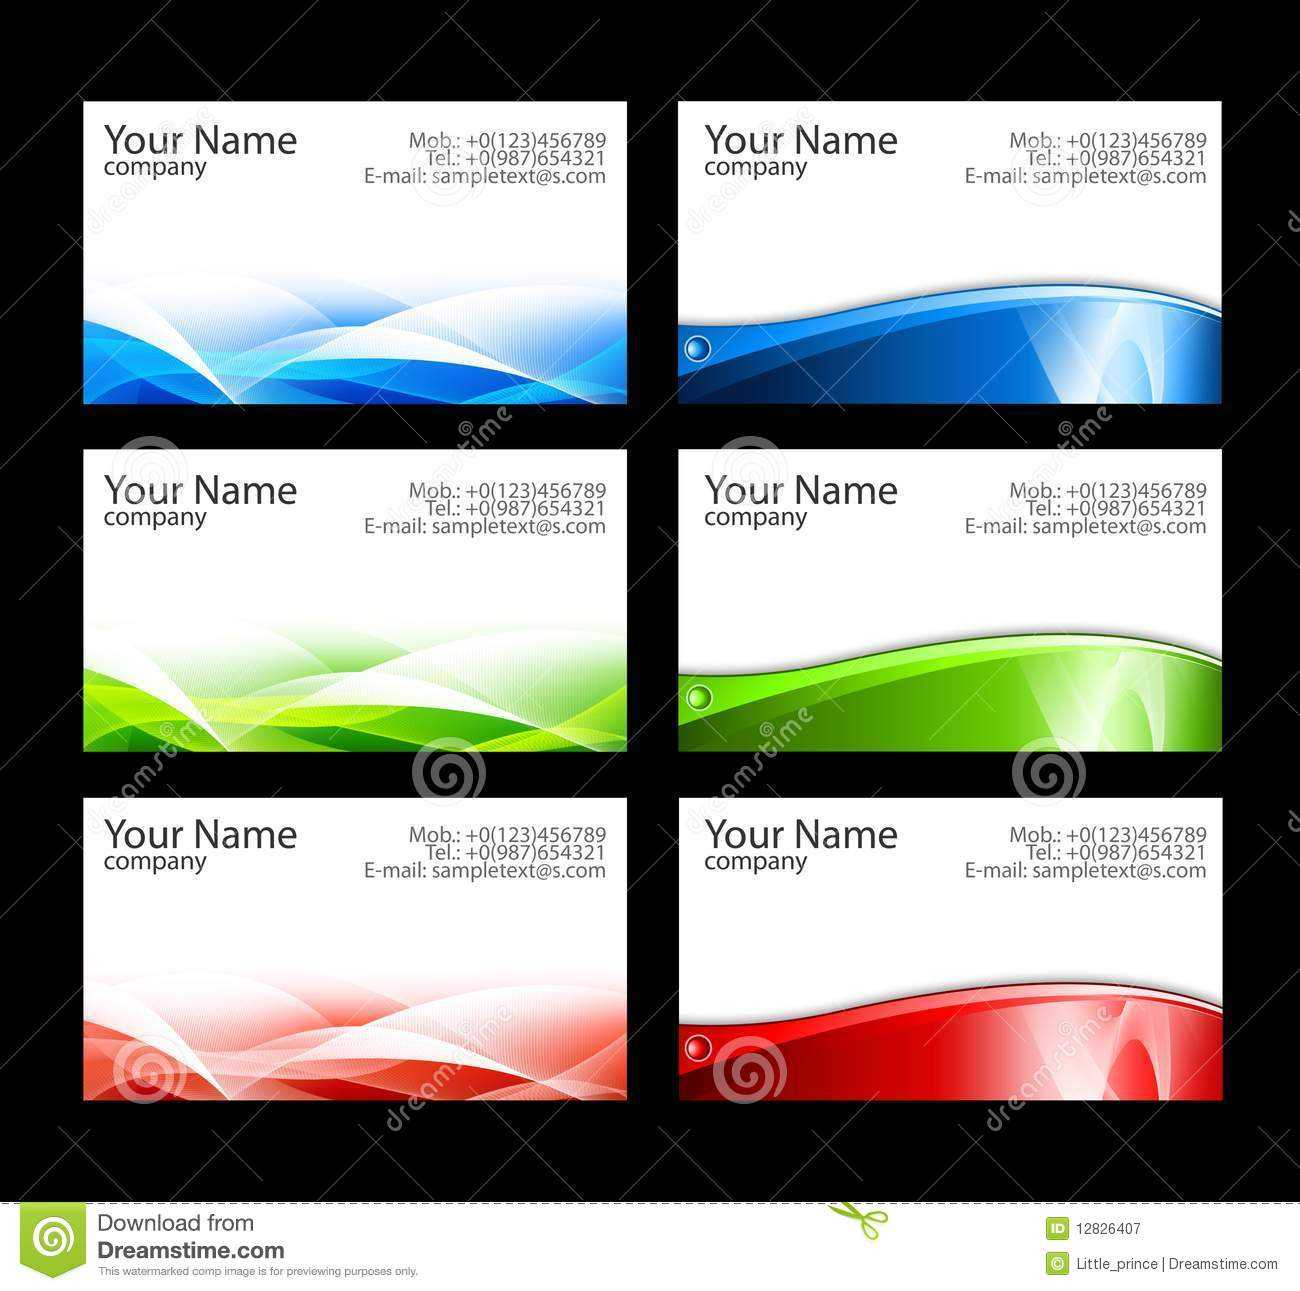 Business Cards Templates Stock Illustration. Illustration Of Regarding Calling Card Free Template